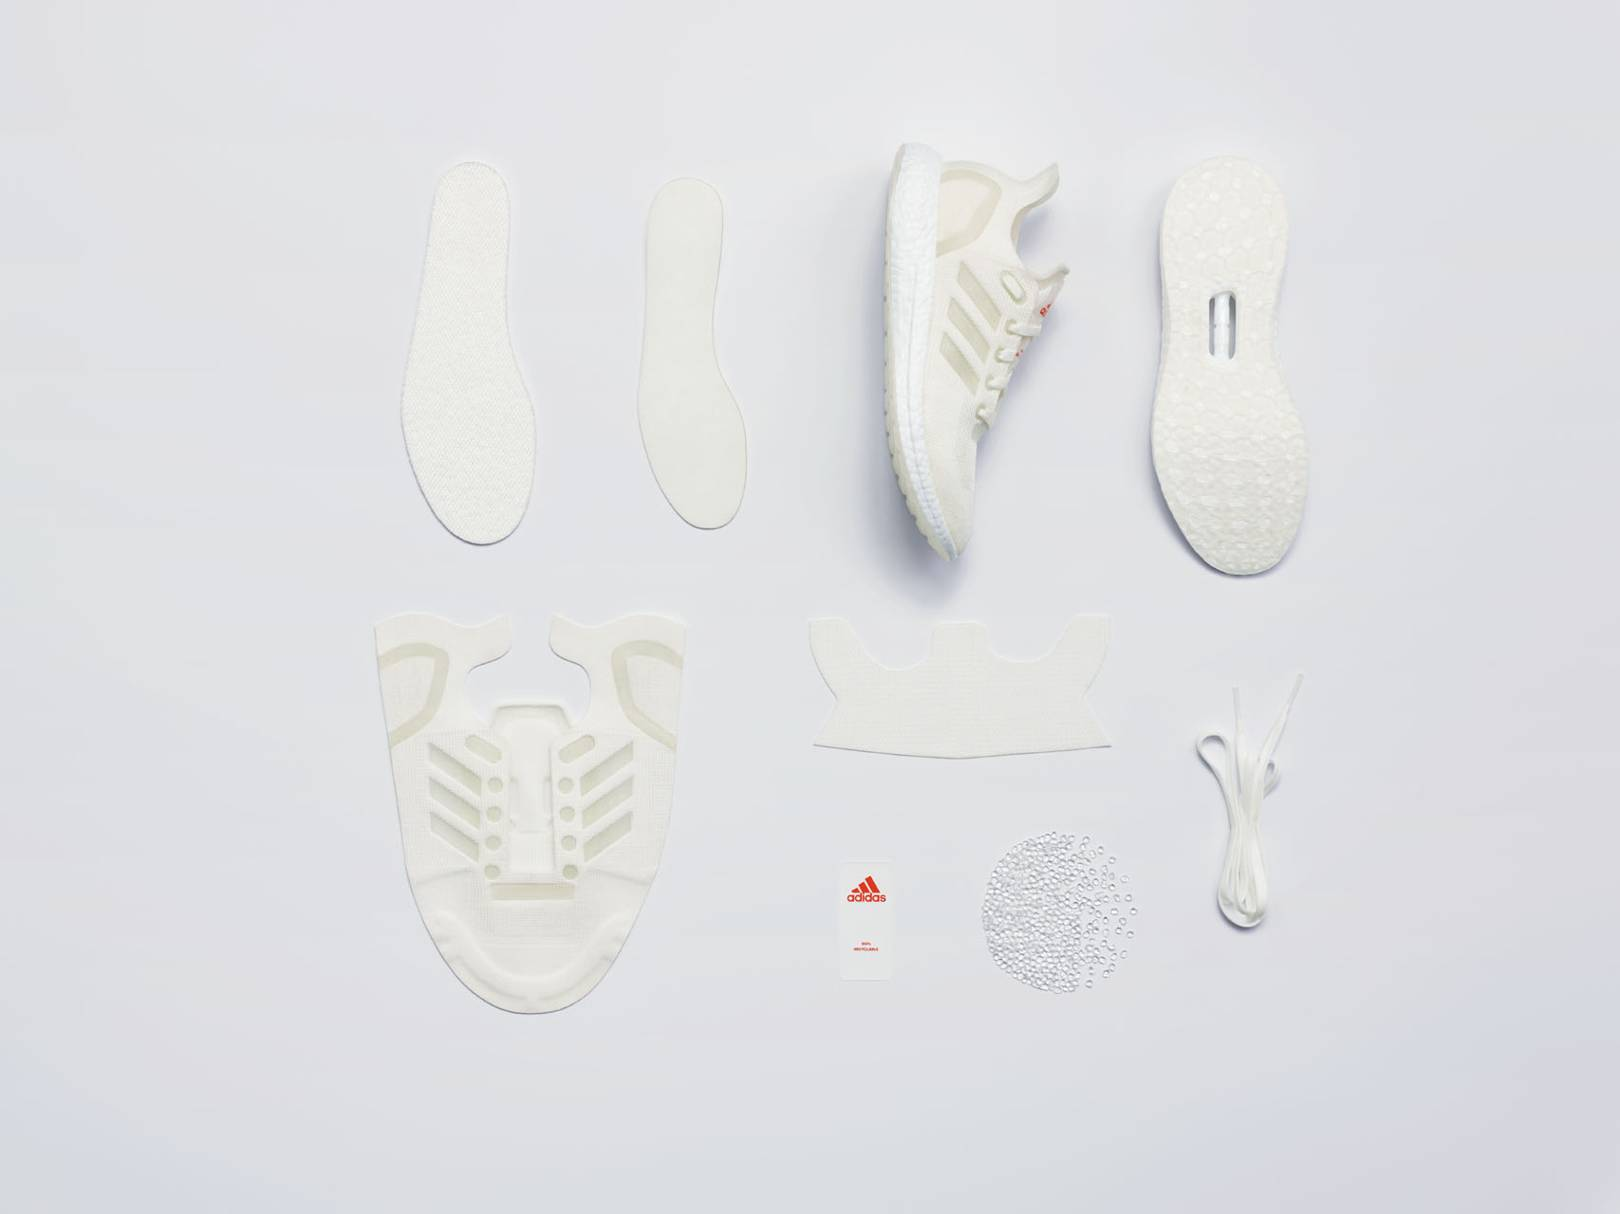 f2244754e6458e Adidas's Fully Recyclable Trainers Have A Never-Ending Lifespan | British  Vogue